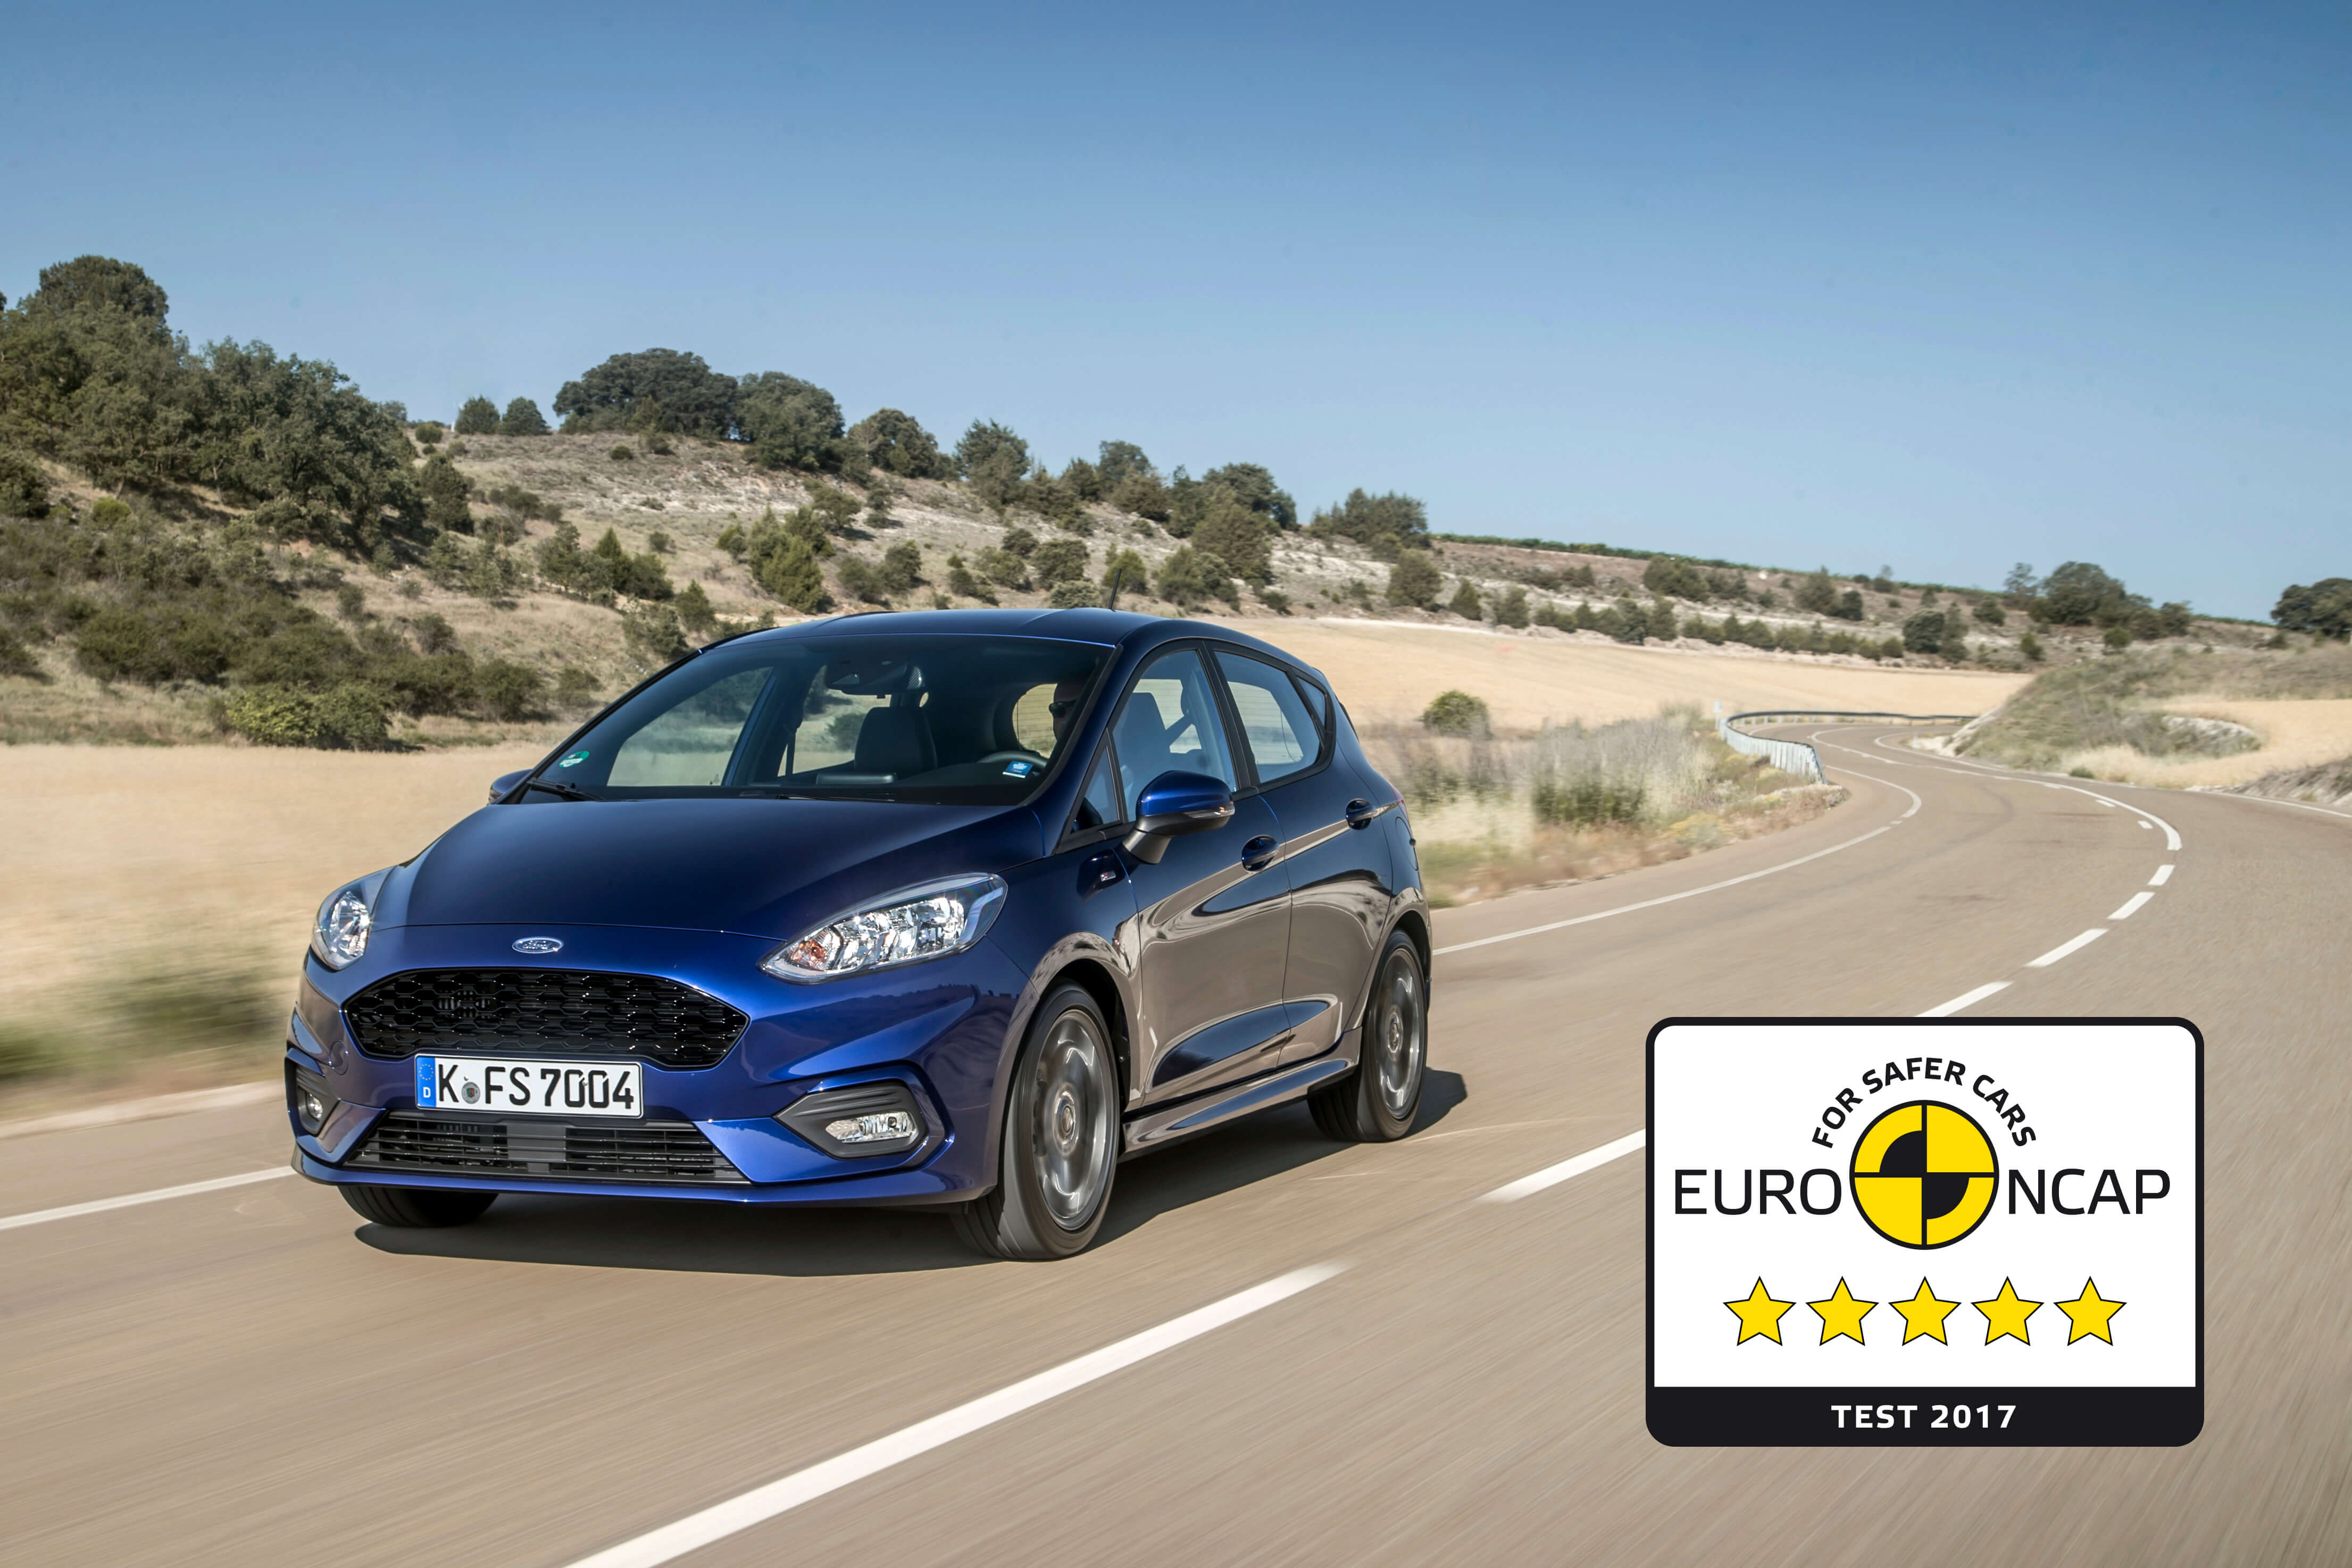 Fiesta-Euro-NCAP-sikkerhed